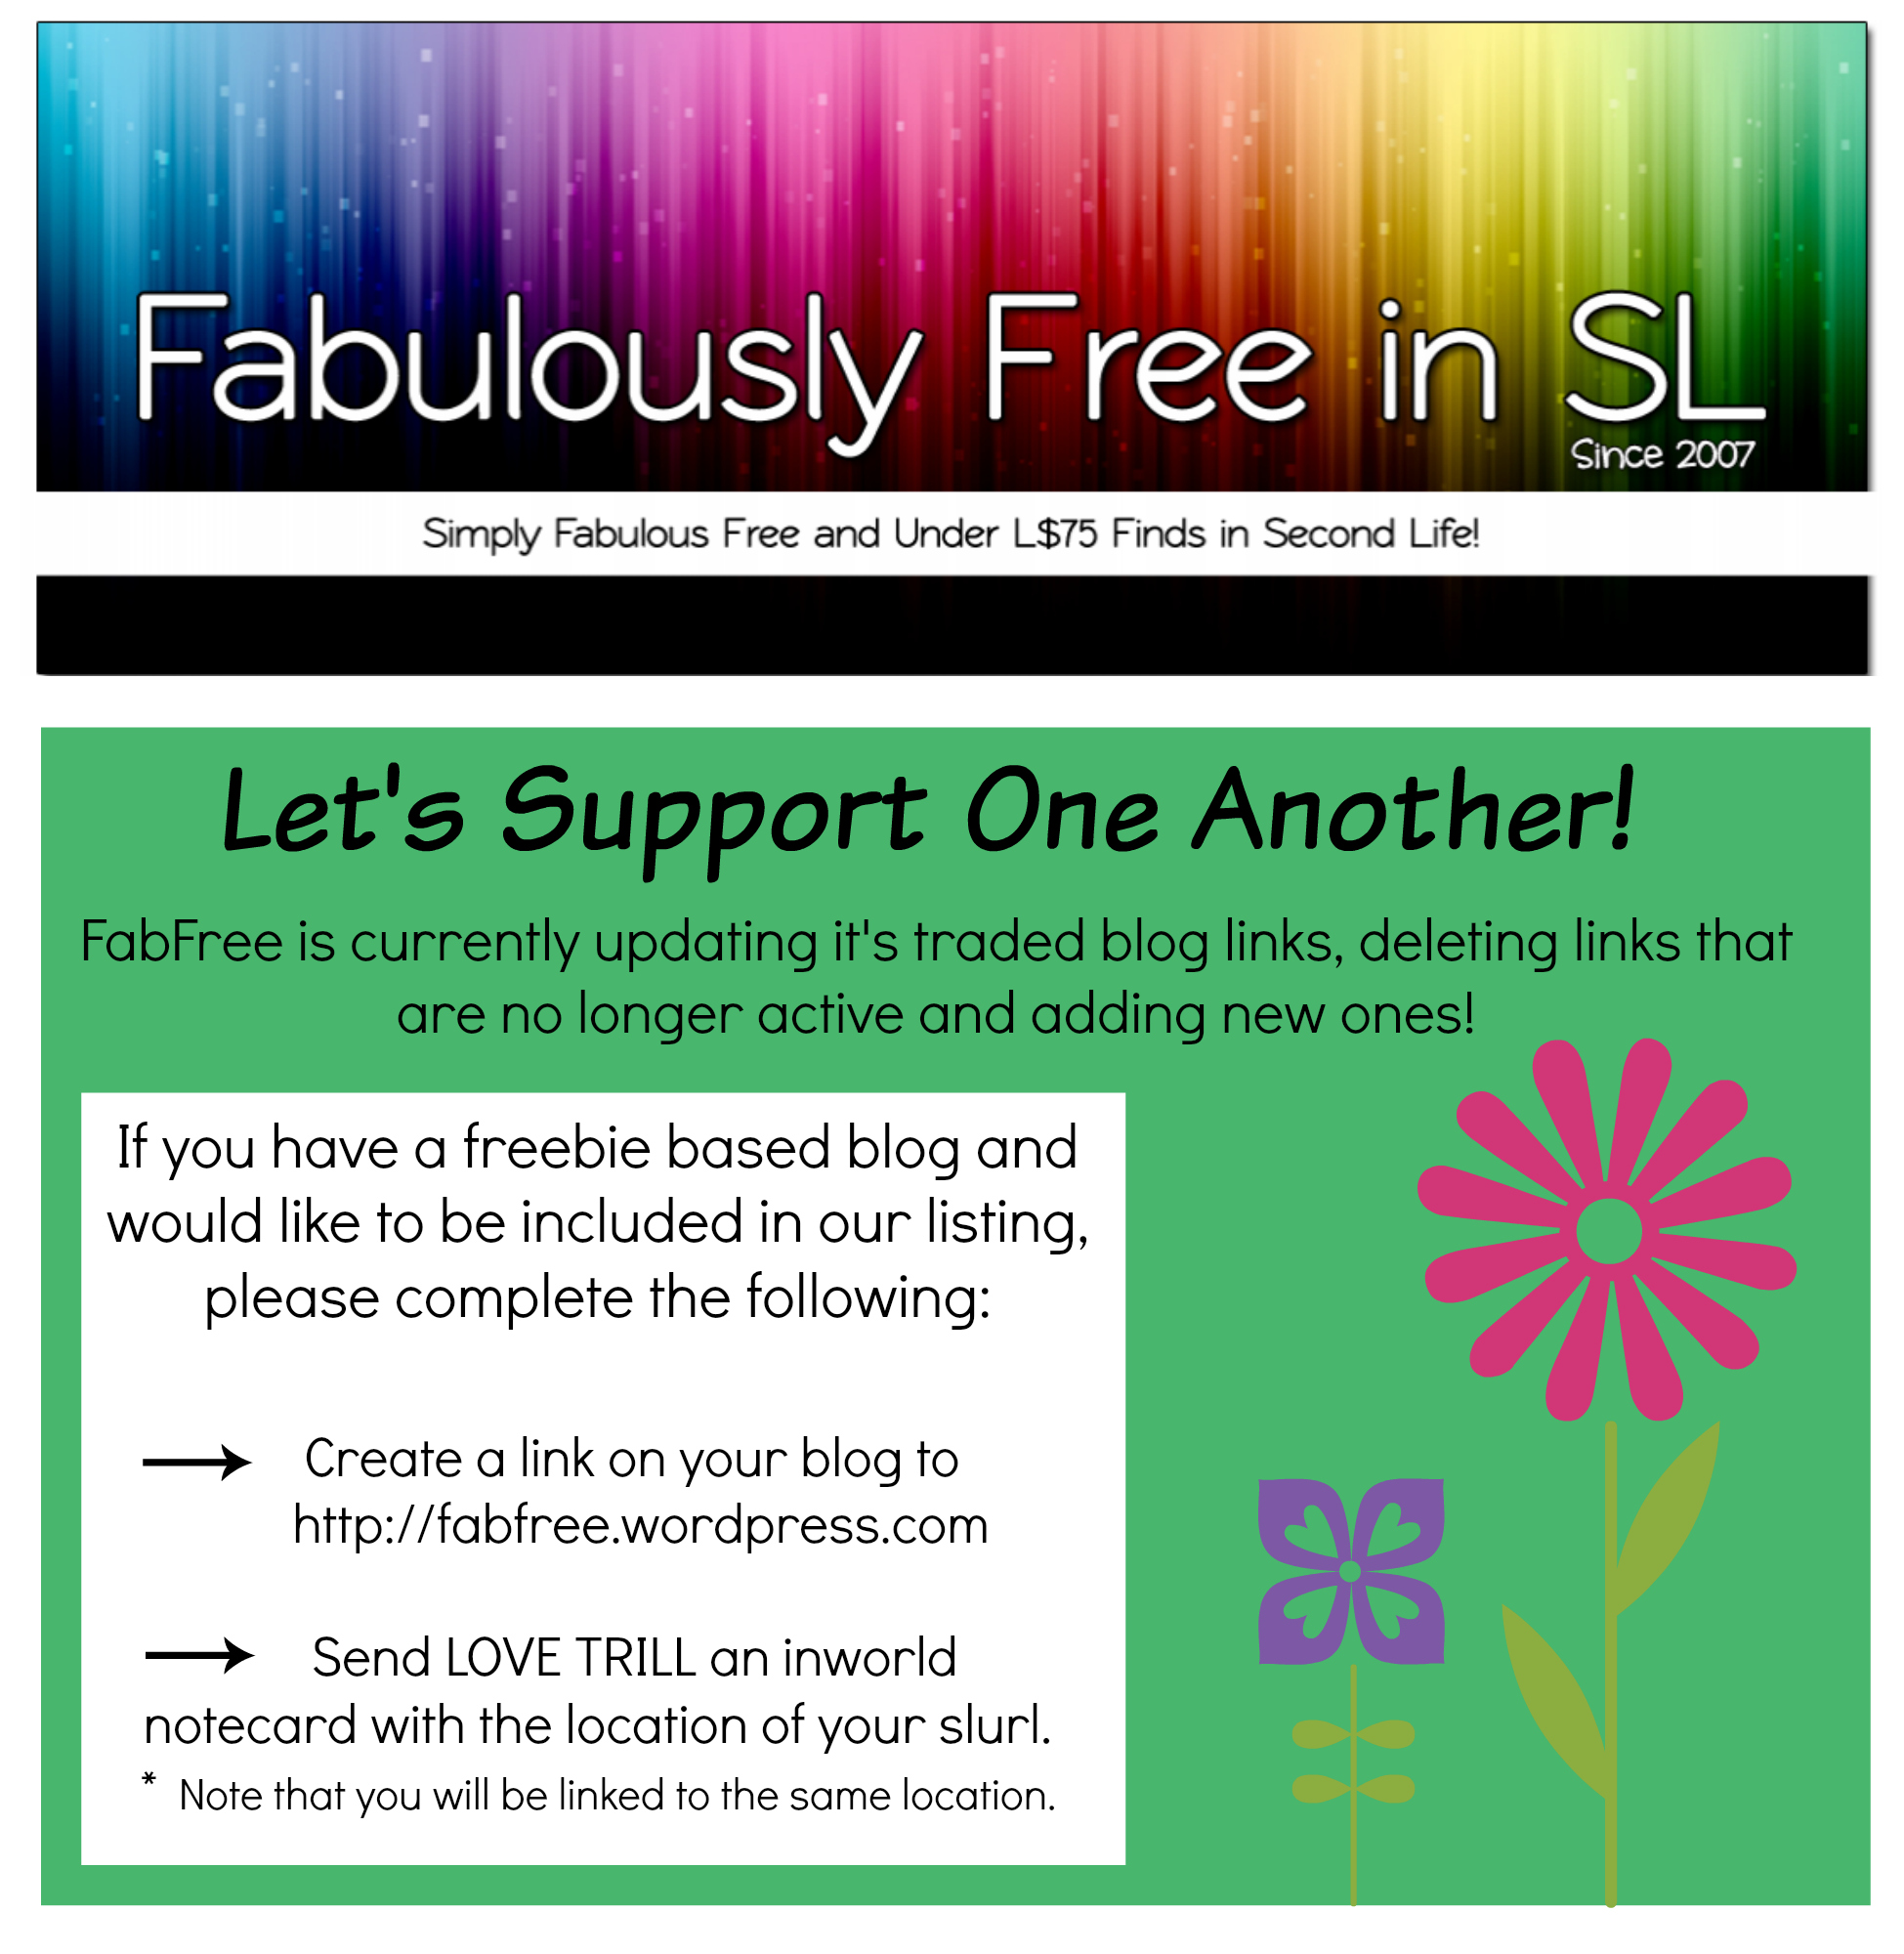 Do You have a SL Based Freebie Blog?